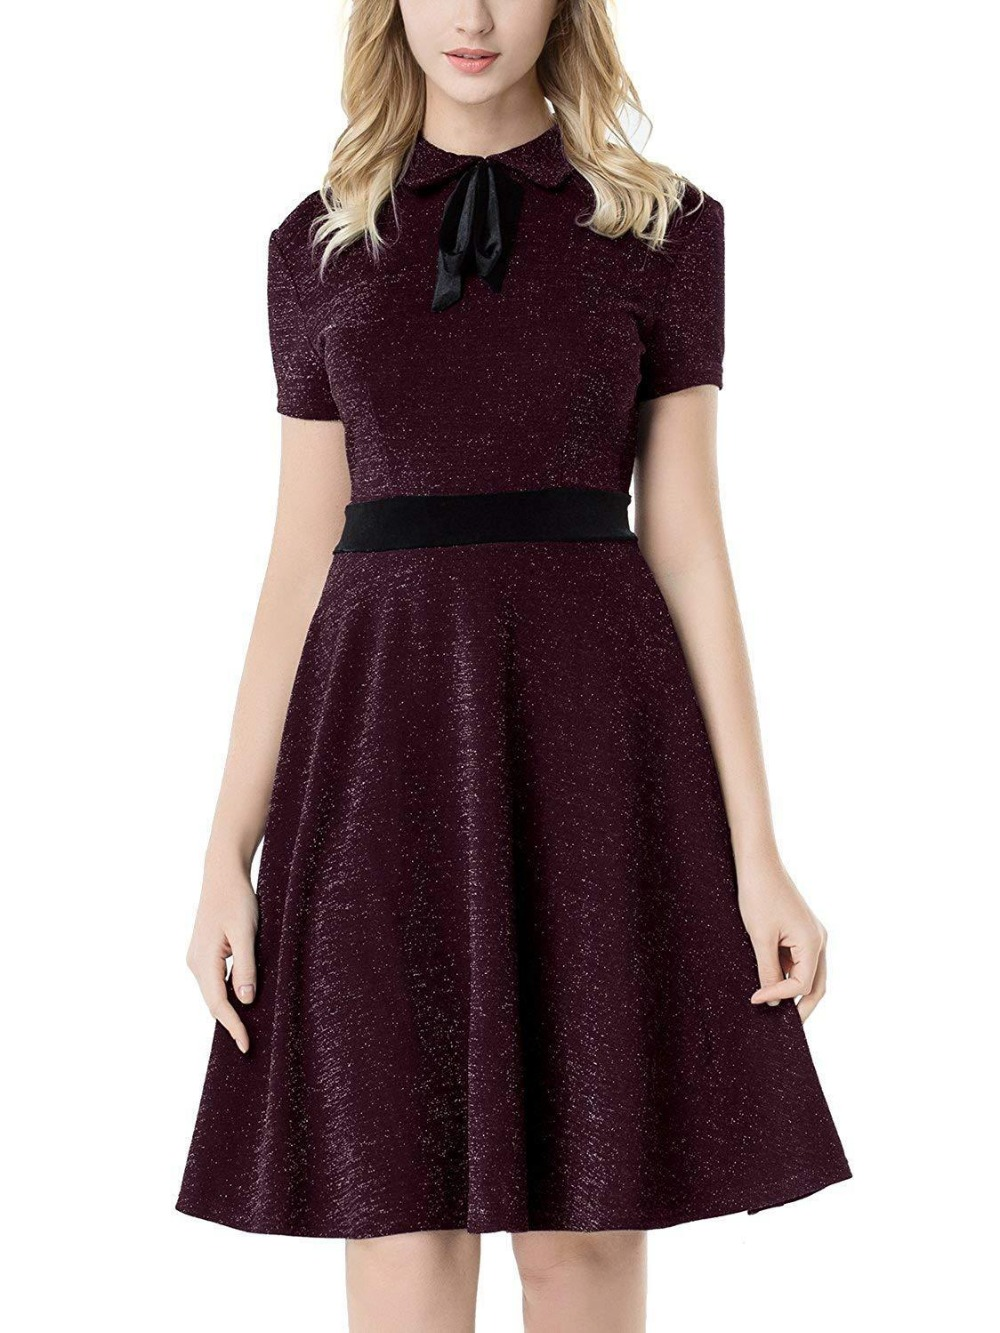 USA Women's Short Dress Vintage Pan Collar Sparkly Cocktail Party Dress